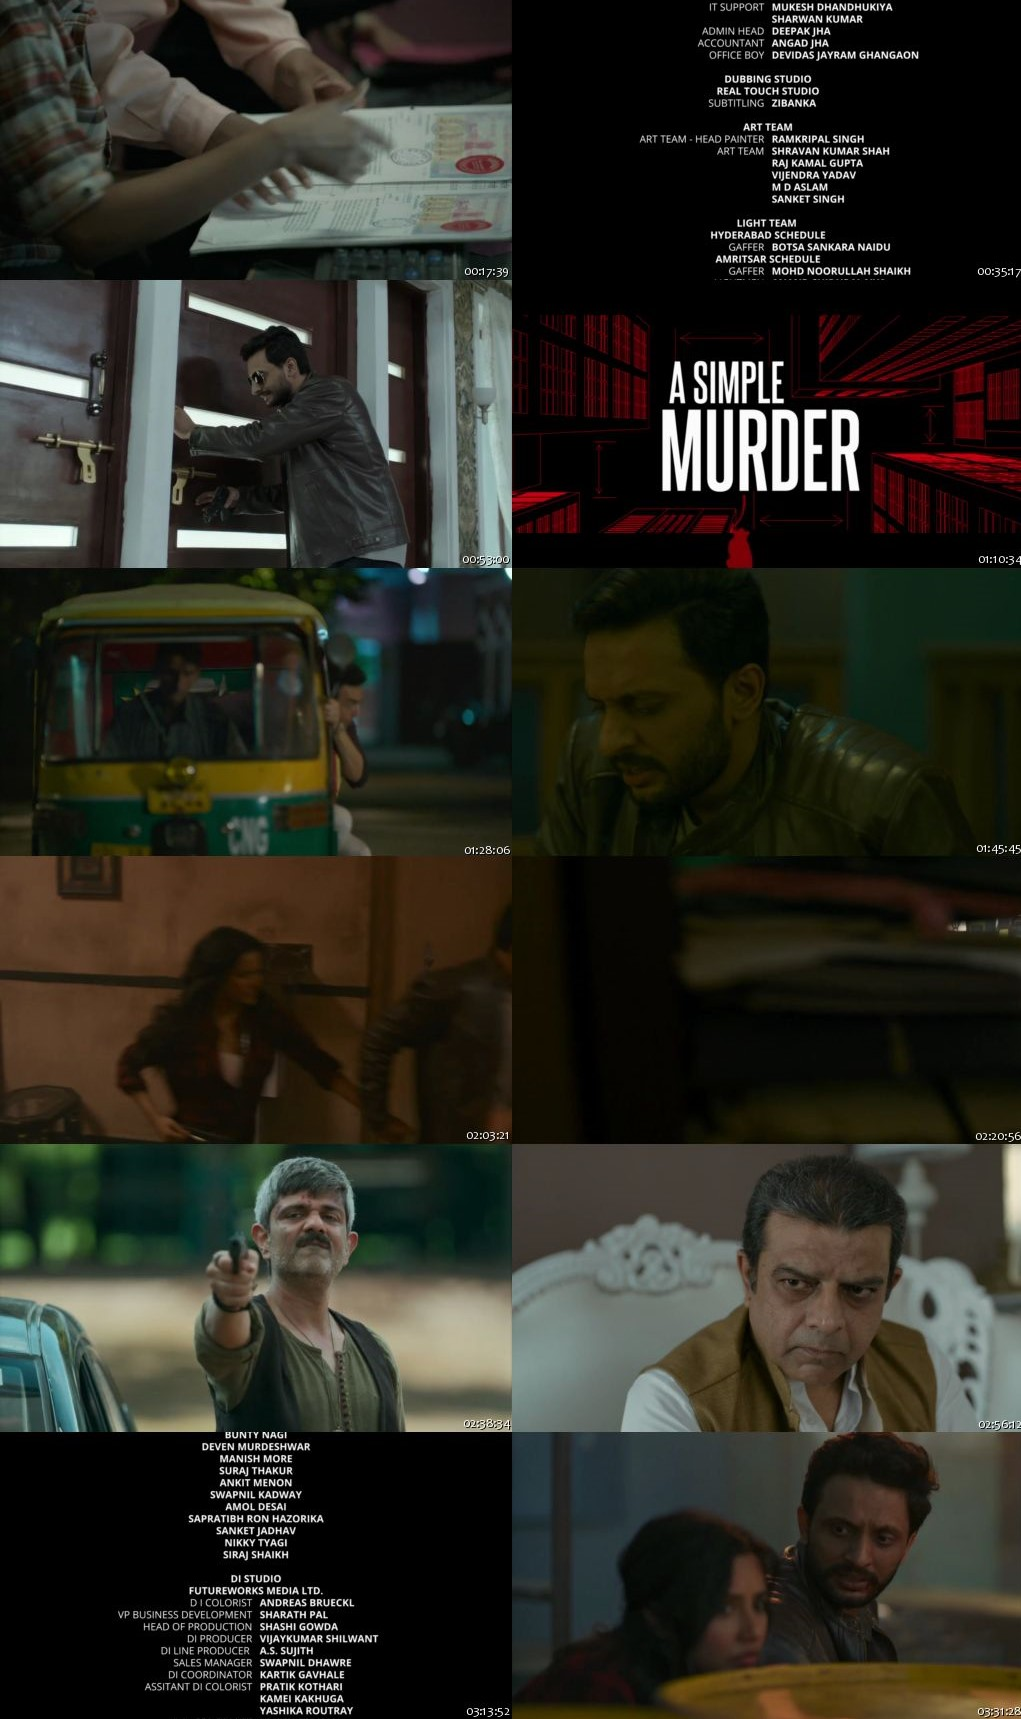 A Simple Murder 2020 (Season 1) All Episodes HDRip 720p